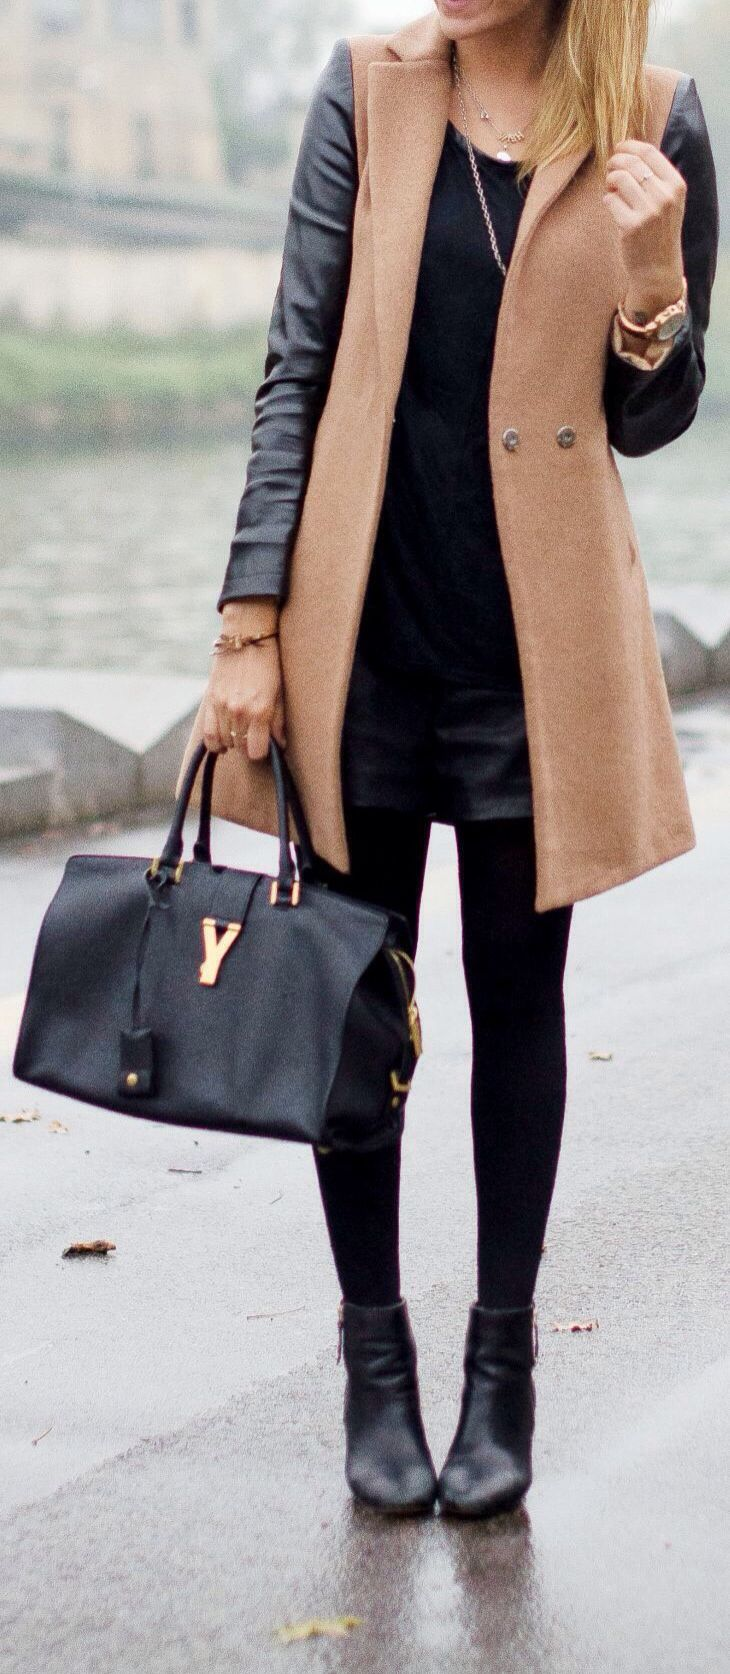 interview outfits for women